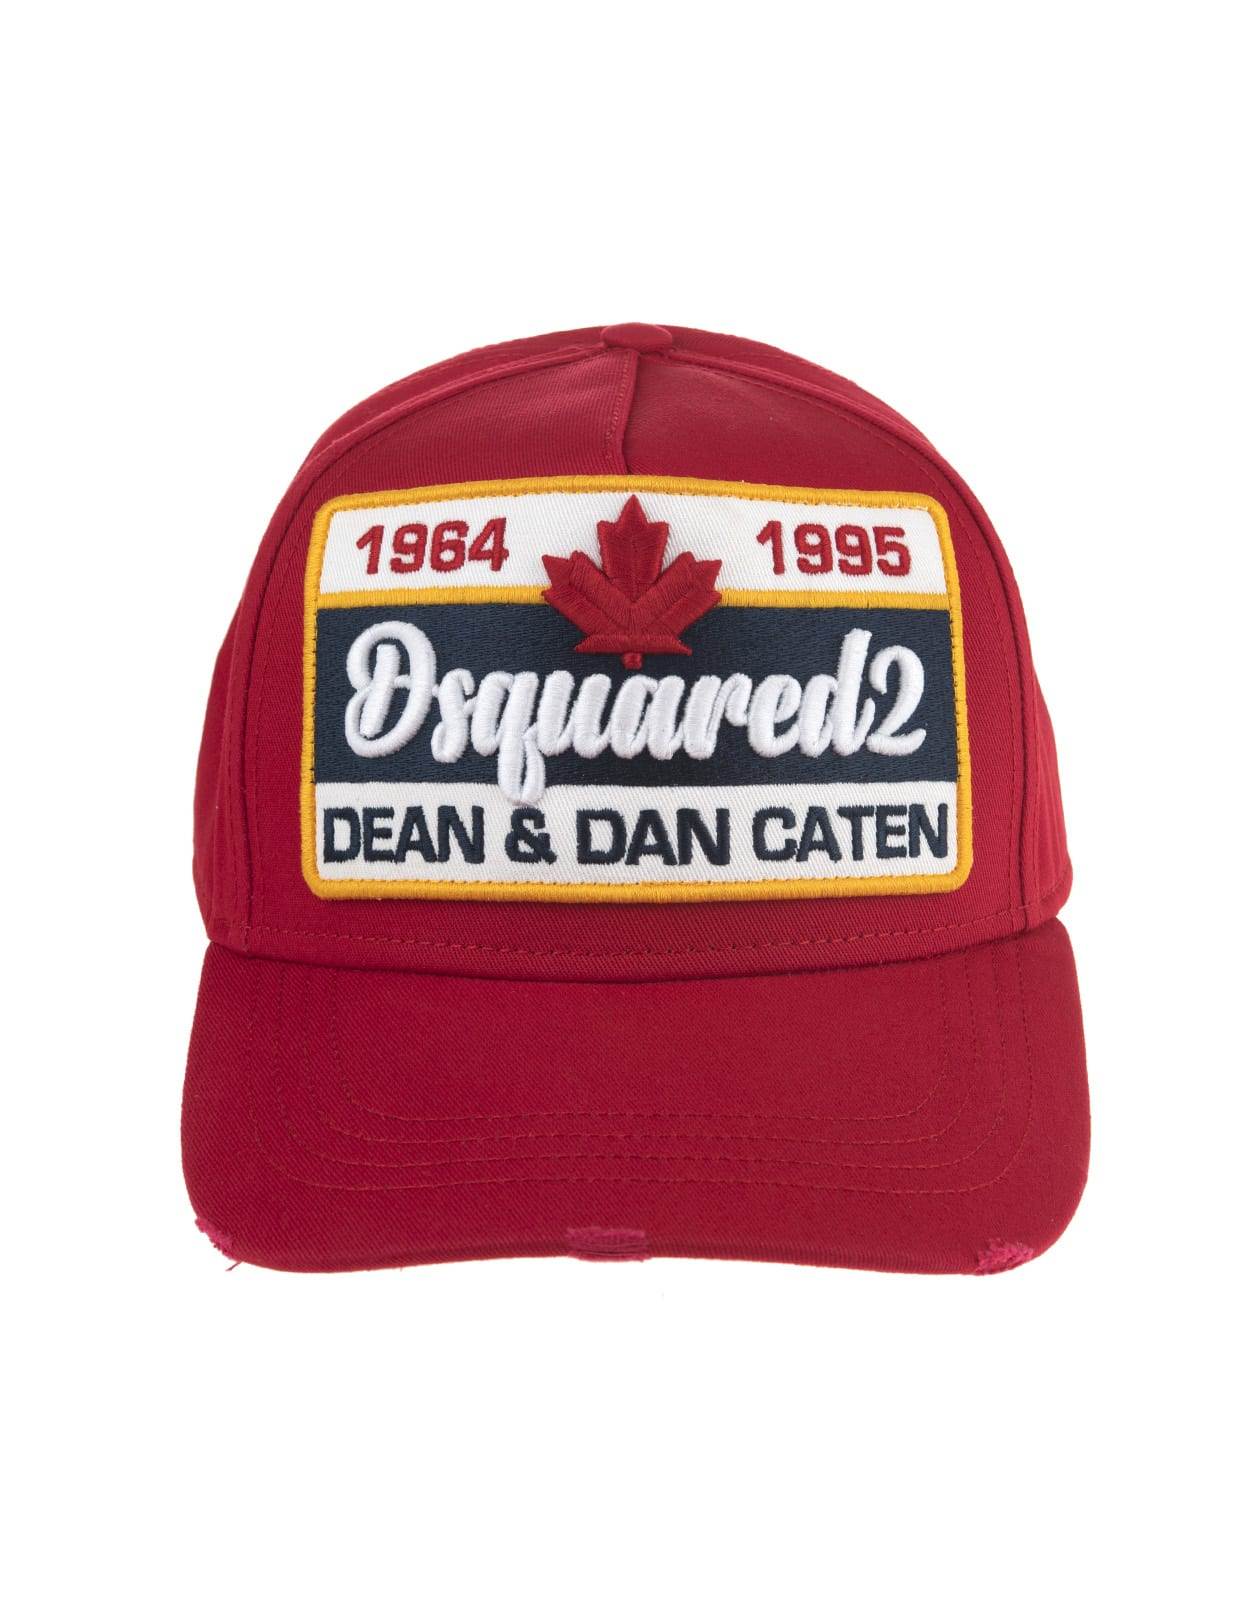 Red Baseball Cap With Dsquared2 1964-1995 Patch